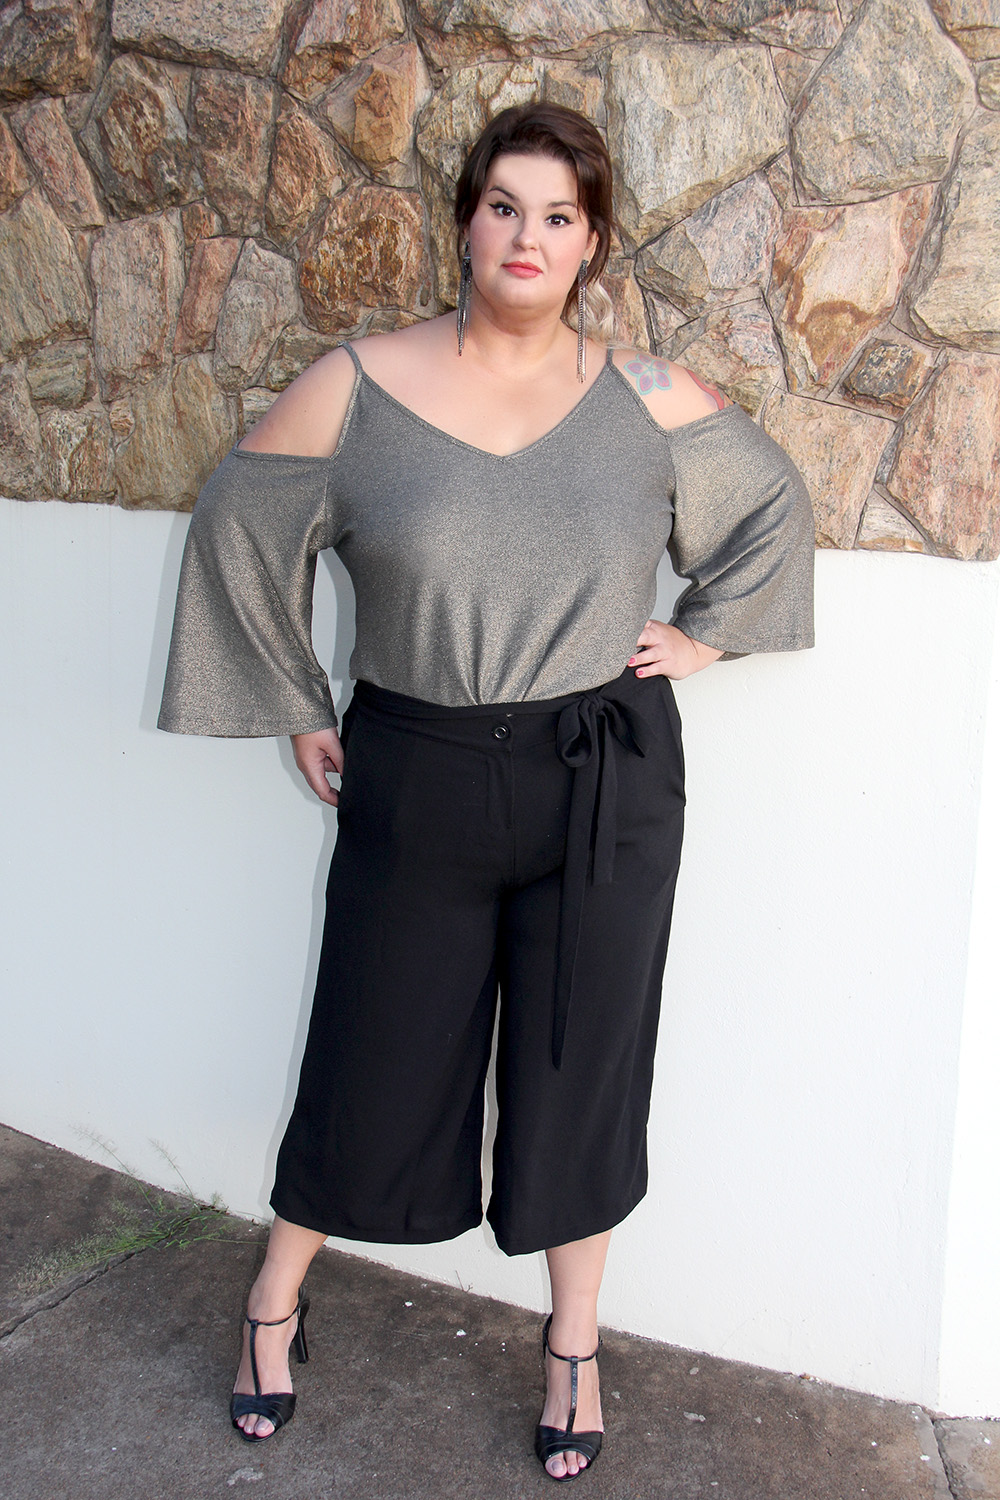 pantacourt-plus-size-moda-plus-size-look-do-dia-plus-size-grandes-mulheres